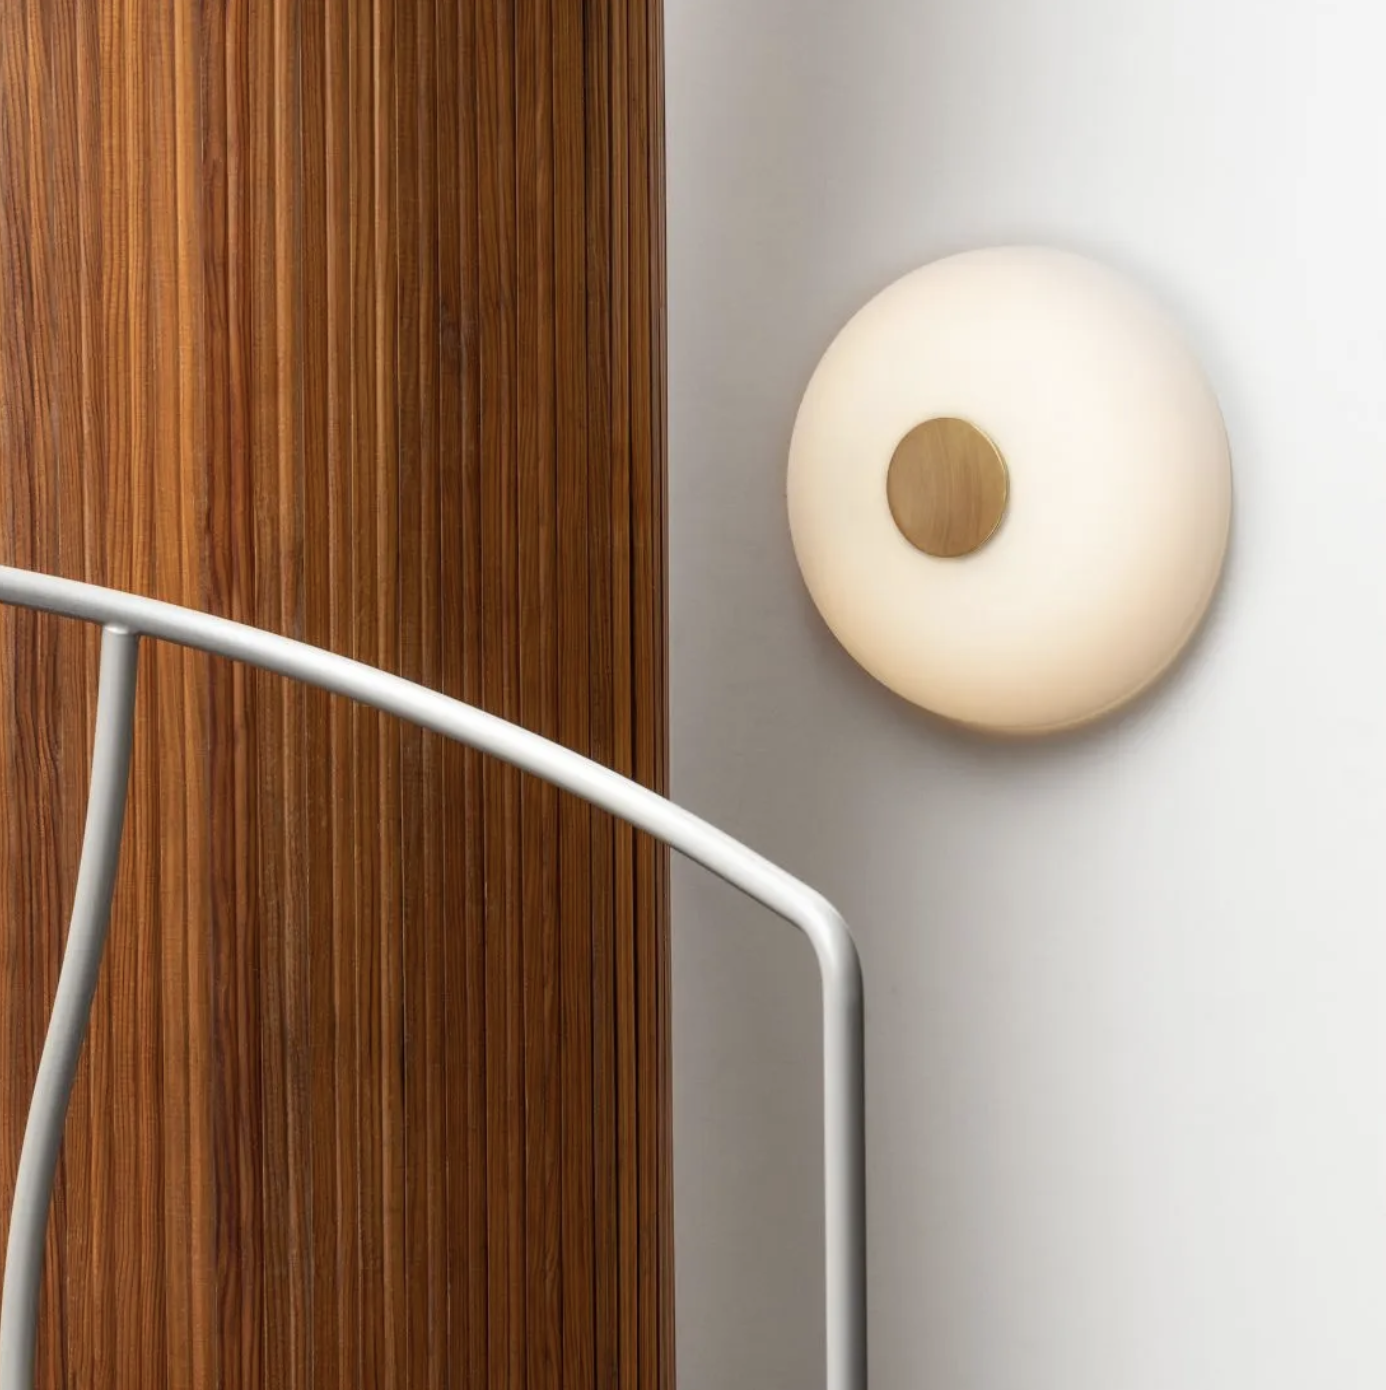 """Tropico Wall Lamp - The """"shape of light"""" is the central theme of this project by Gabriele and Oscar Buratti, which began with the Equatore family of lamps, presented in 2017 and now expanded to include other finishes, and continues with the new Meridiano and Tropico. Forms of glass and metal that collect, contain and diffuse light in space. Passing between opaline, coloured and transparent layers, emphasised by the refined curves and the magic of blown glass, the light is free to create surprising and fascinating effects, patterns and moods. Tropico is a spherical cap of opaque opaline glass, flattened and fixed by a large mirrored metal boss. The family comprises wall/ceiling and table versions, both available in three different sizes.  Wall lamp with diffused phase-cut dimmable light. Diffuser in etched opaline blown glass. Central button available in gold or black nickel-plated. Integrated LED.  